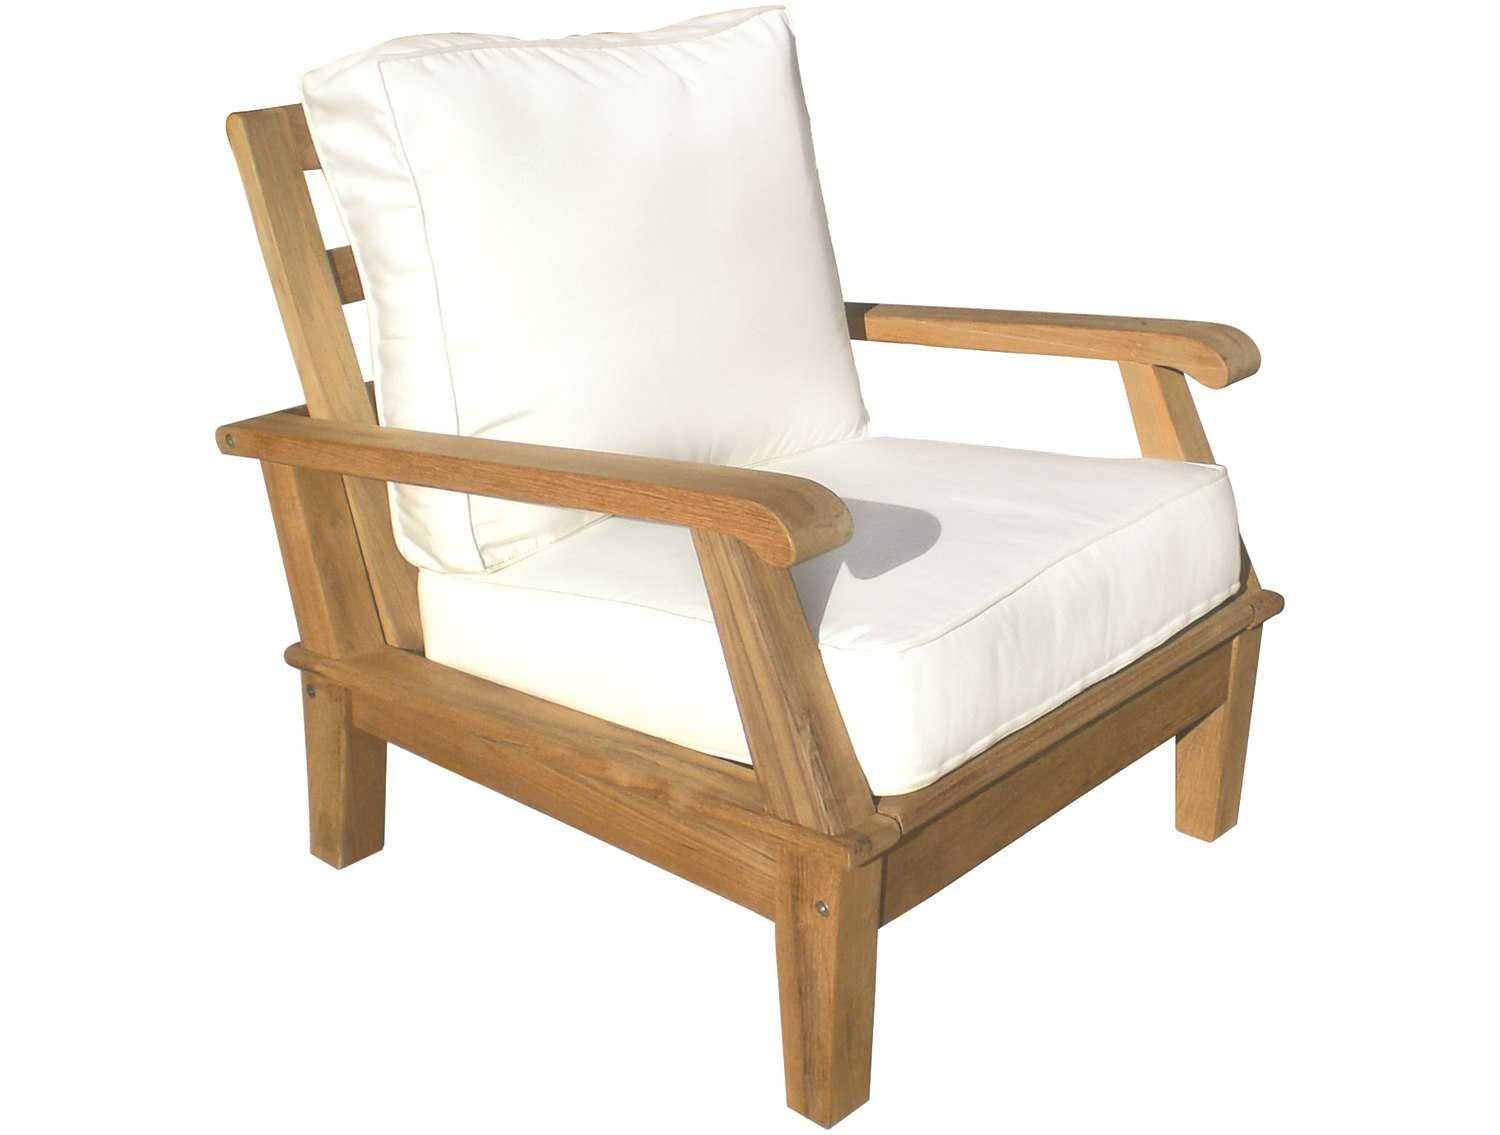 Royal Teak Collection Miami Cushion Adjustable Lounge Chair MIACH